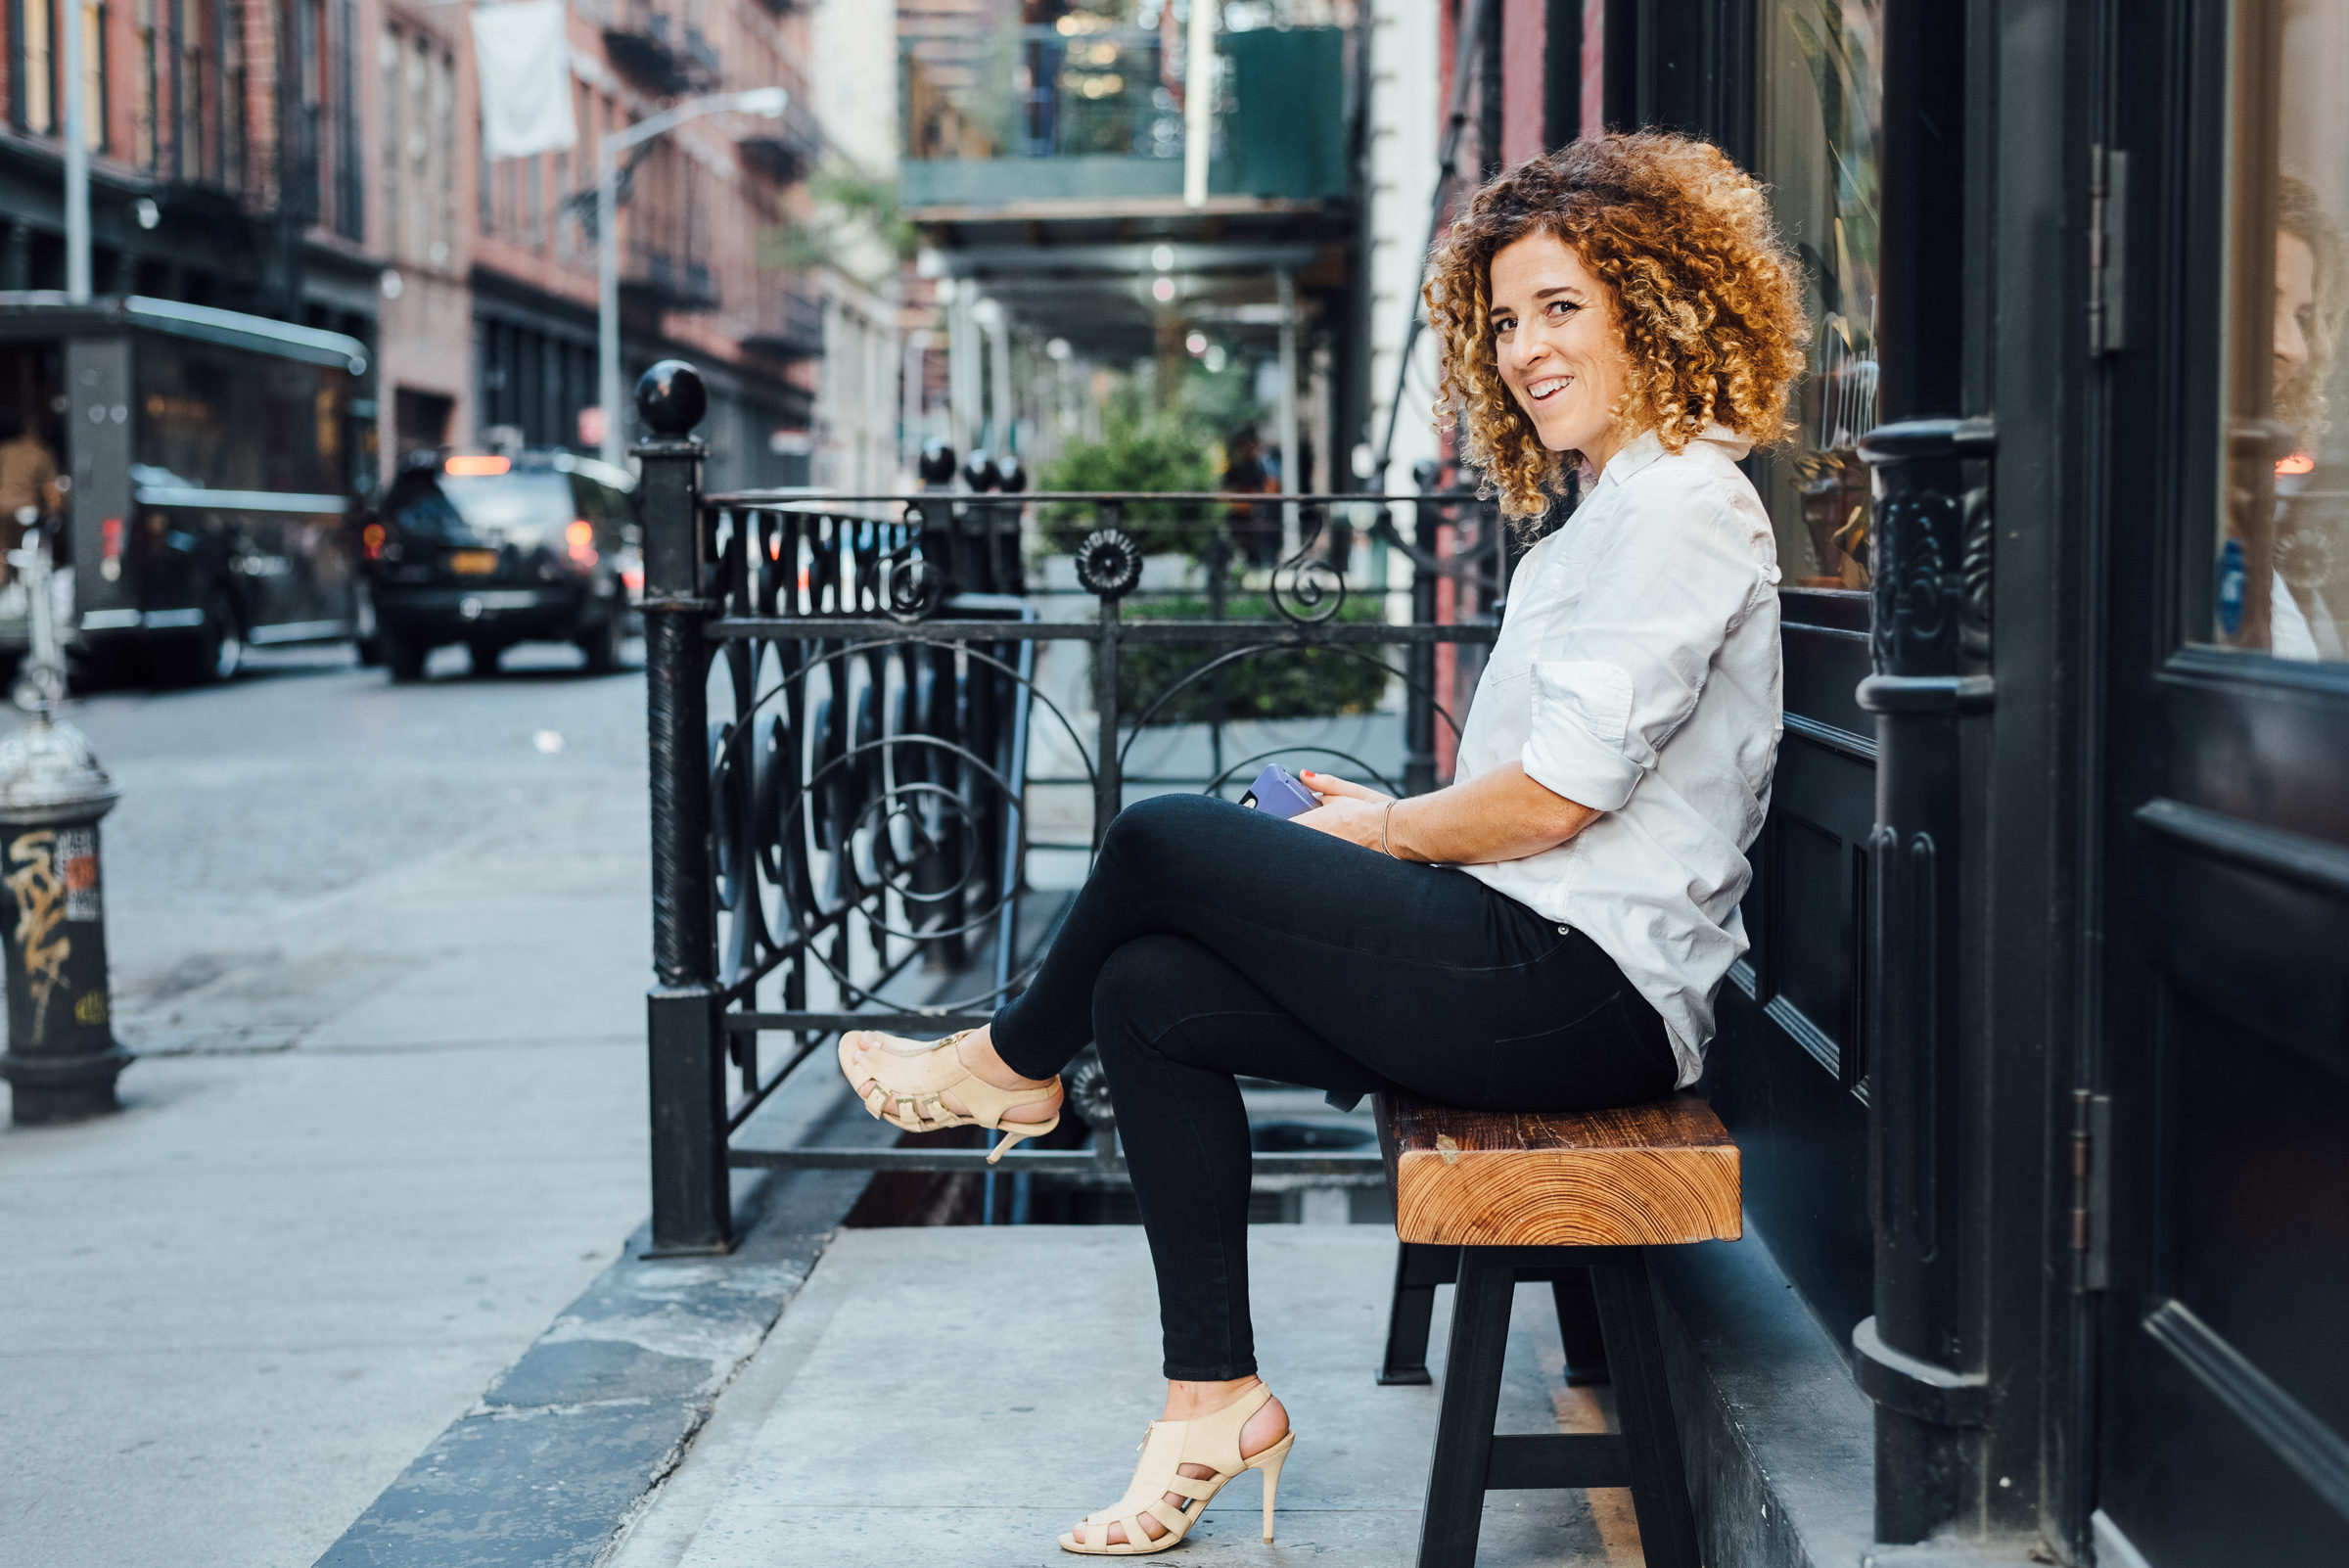 Sarah Doody sitting on bench in NYC